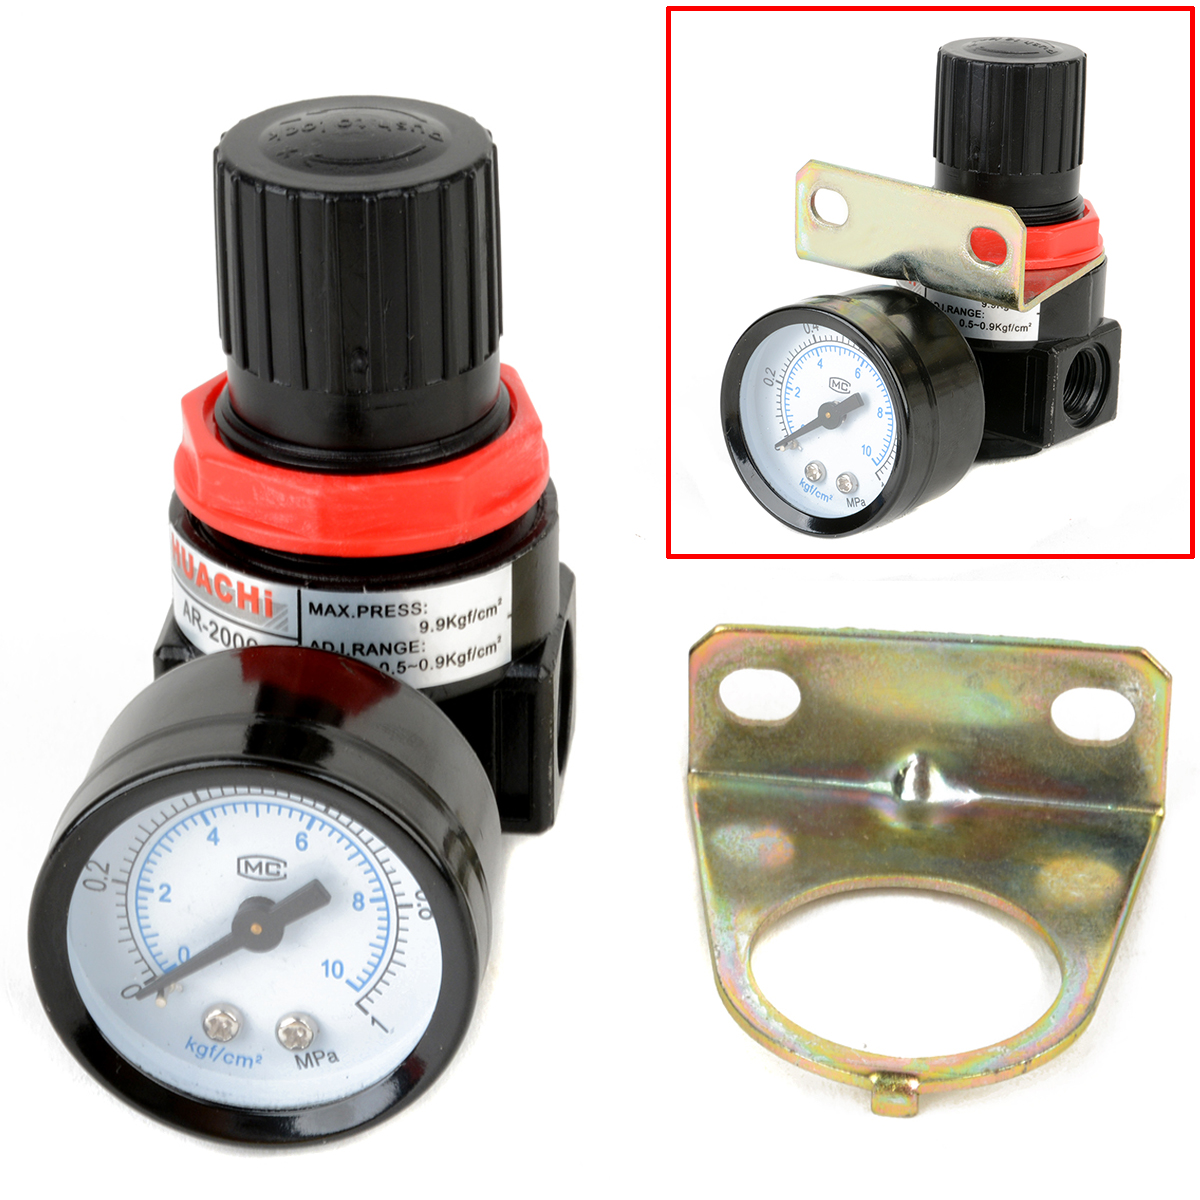 1pc AR2000 Compressor Air Control Pressure Relief Reducing Regulator Regulating Valve With Gauge Mayitr Pneumatic Parts 1pc air compressor pressure regulator valve air control pressure gauge relief regulator 75x40x40mm